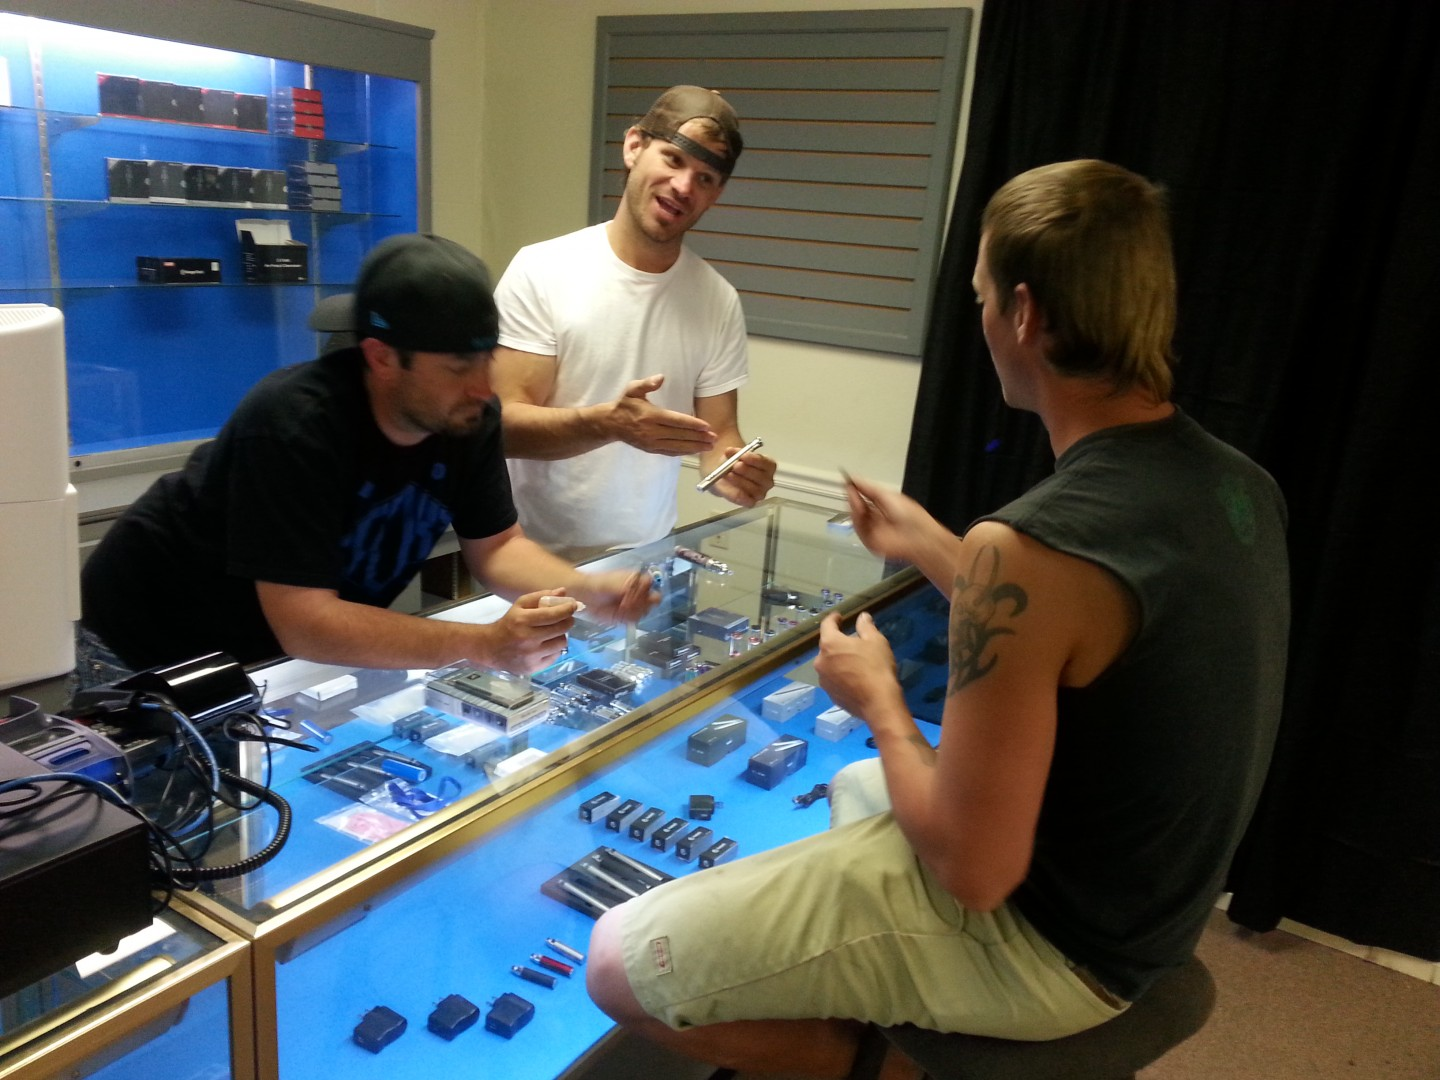 L-R: Owners Tysen Johnsen and Brendon Gunn helping customer at Cloud 9 Vapor in Washington City, Utah, Sept. 30, 2013 | Photo by Drew Allred, St. George New